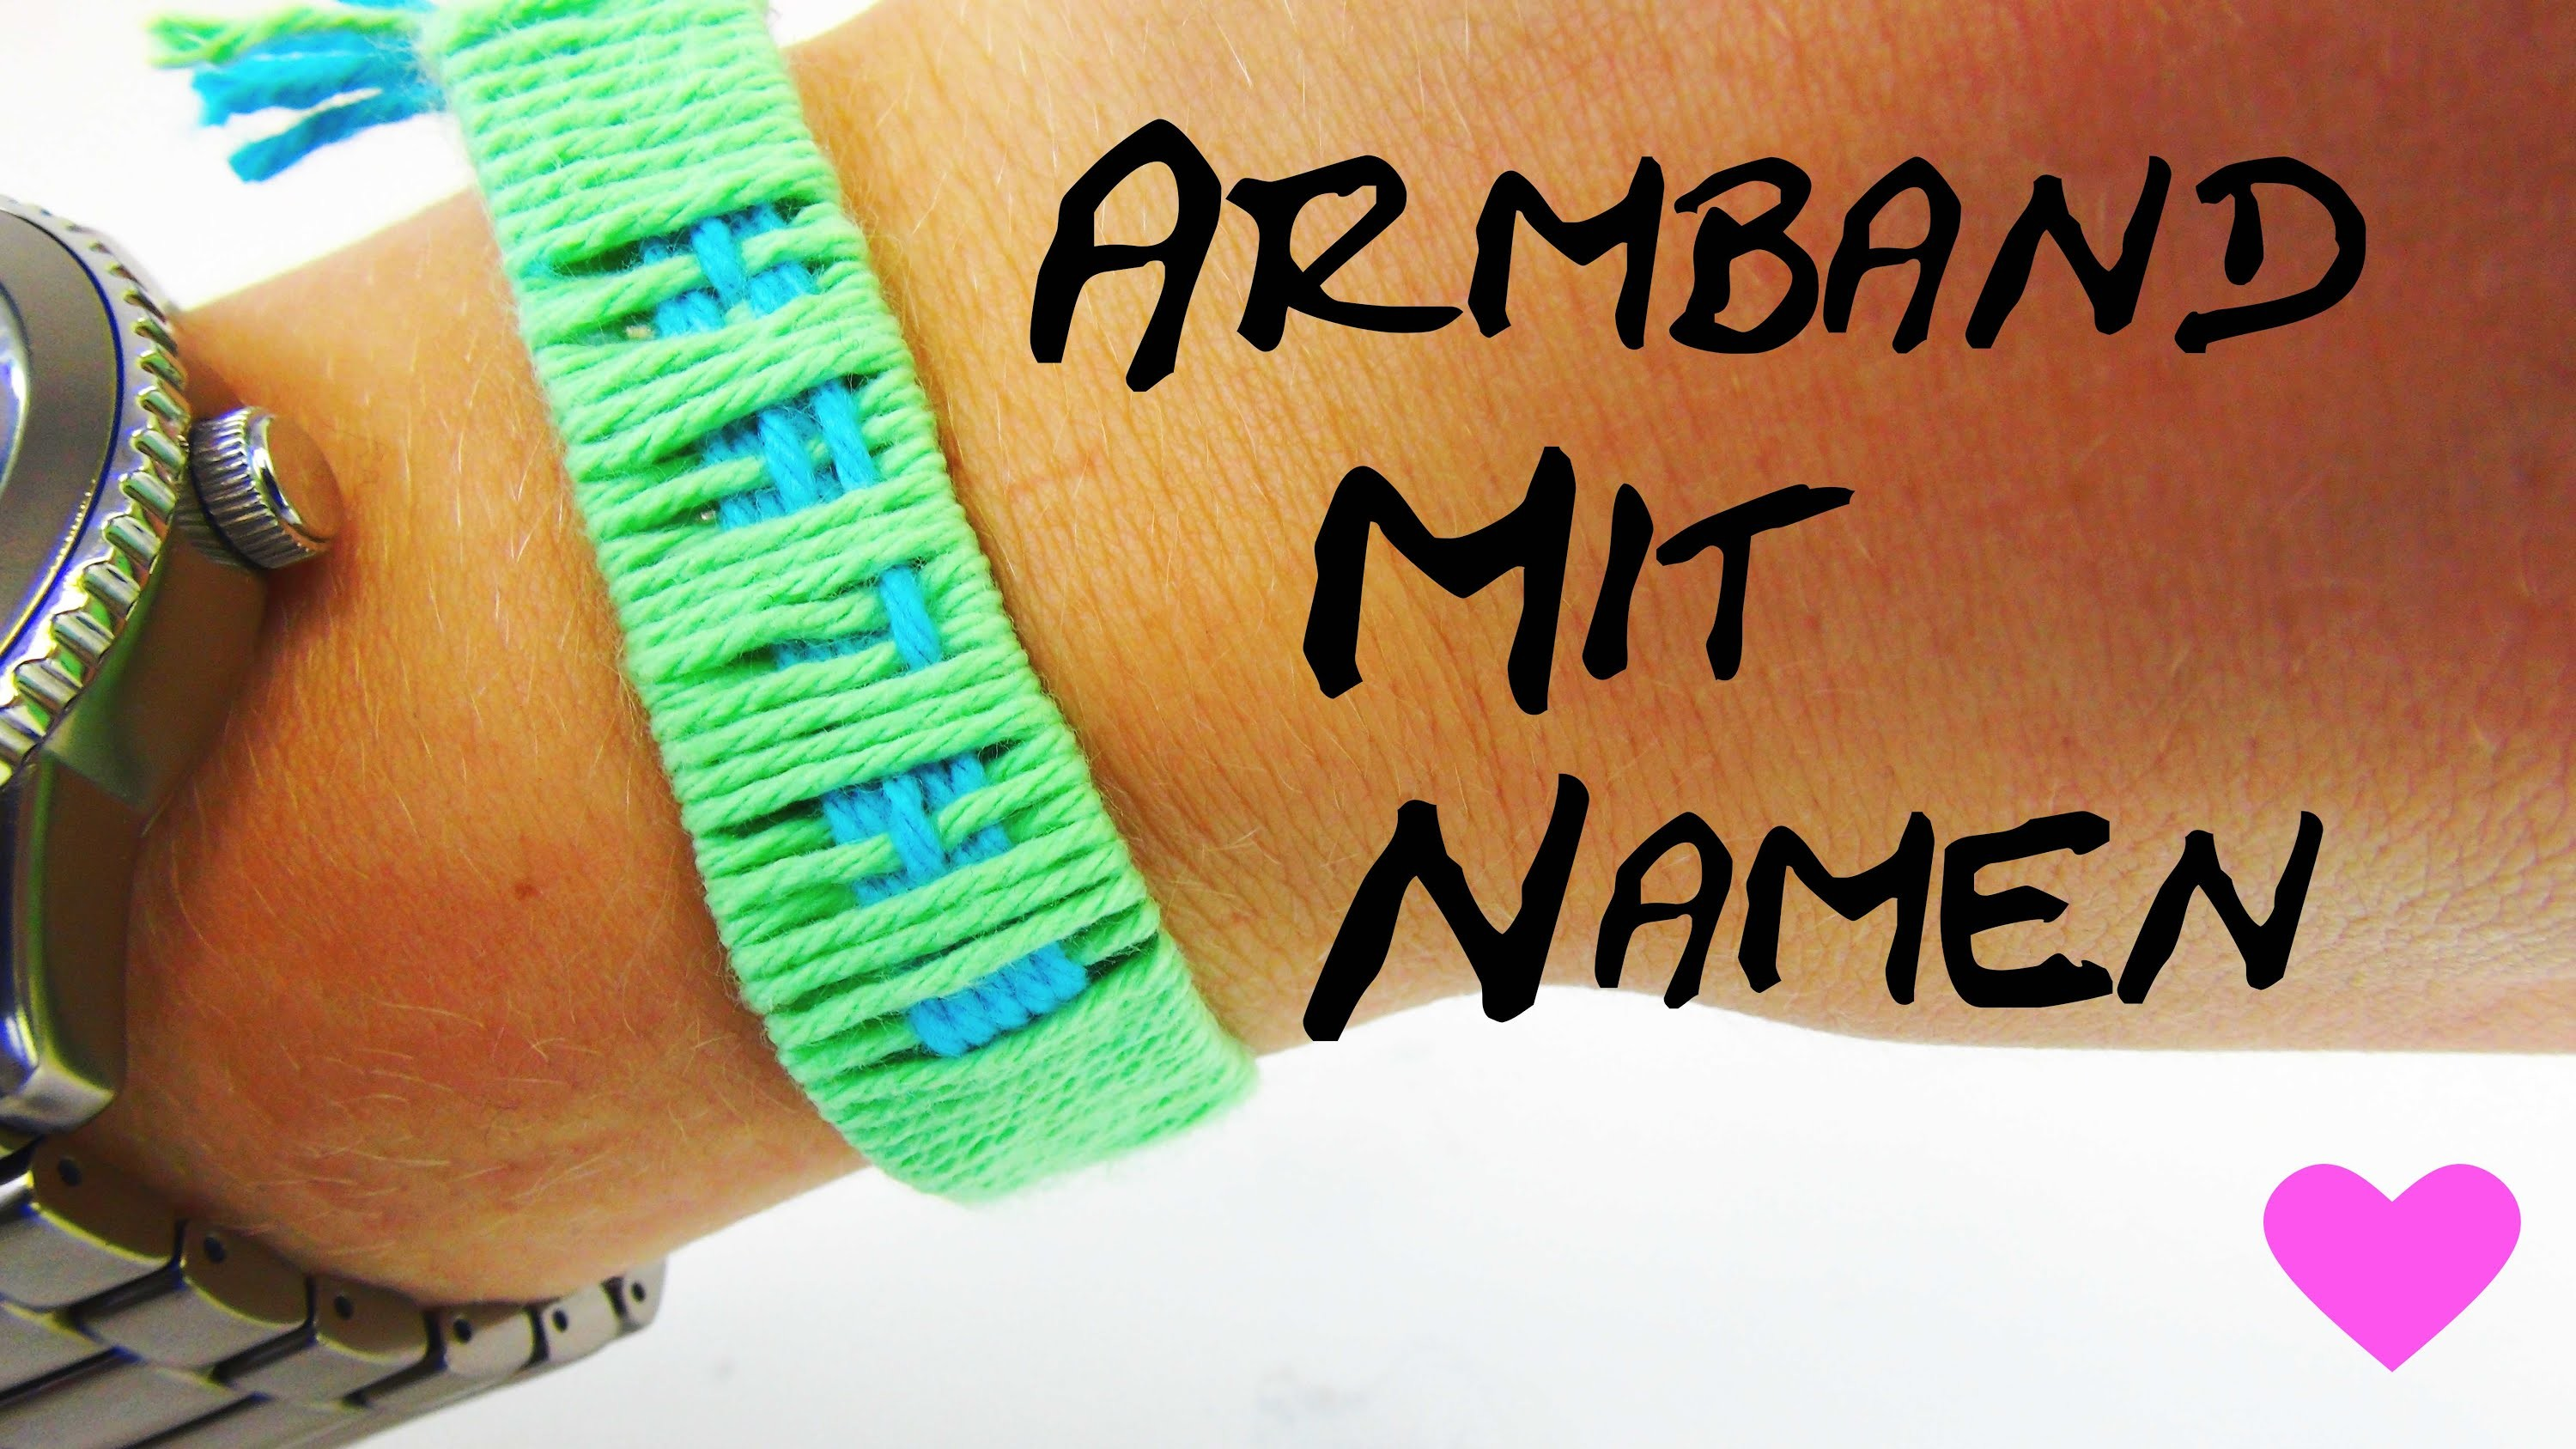 Armband mit Namen selber machen DIY Anleitung How To make name bracelets